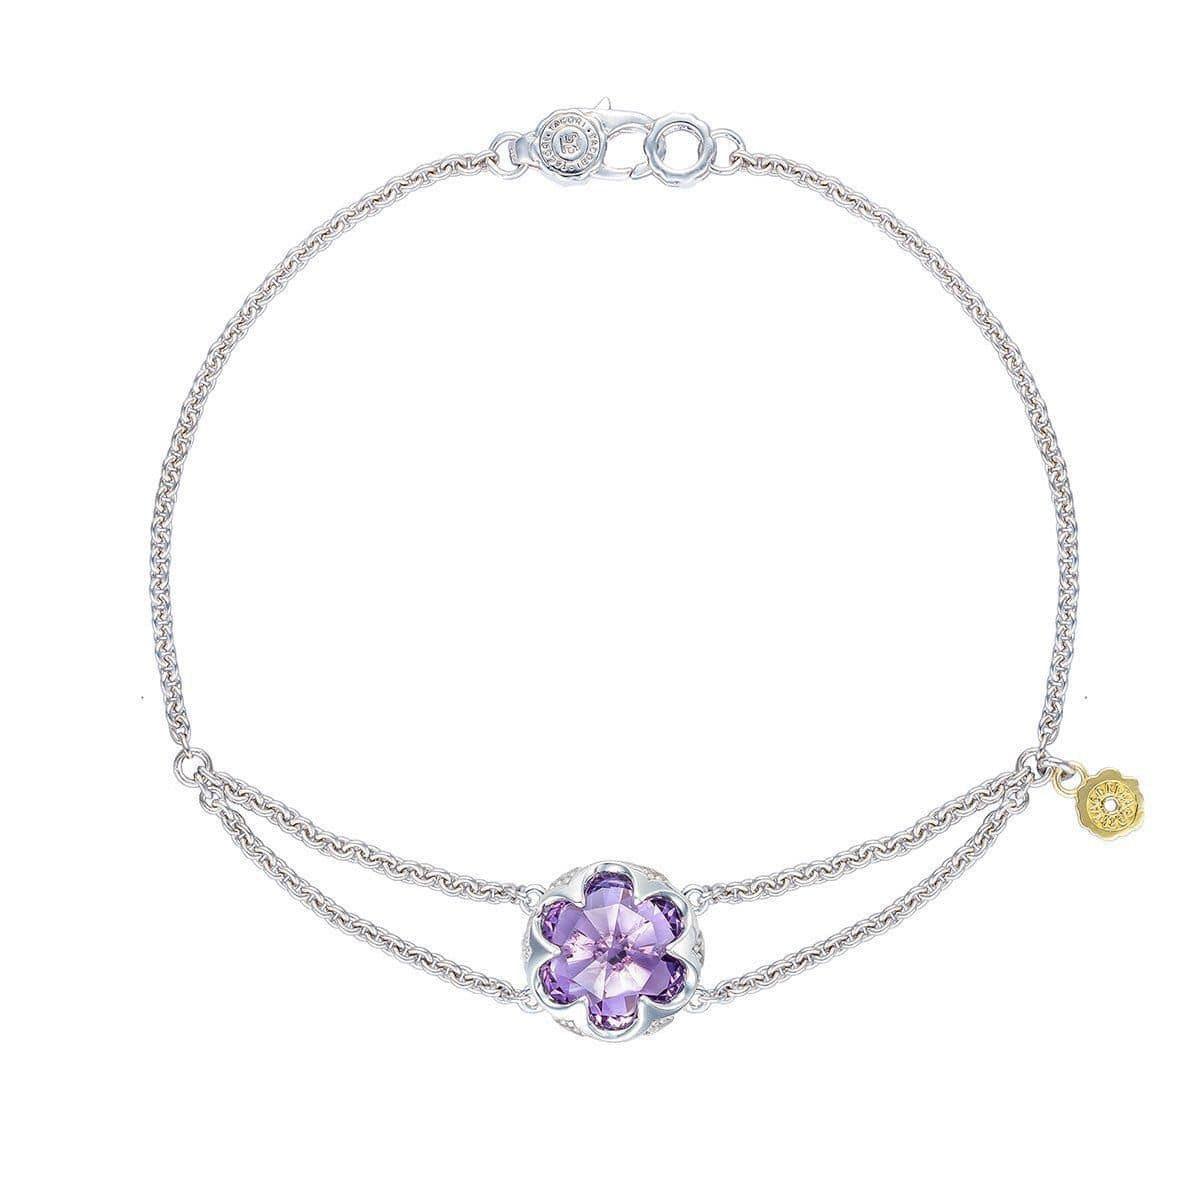 "Silver 10mm Round Amethyst 1/2"" Bracelet Double Chain Anchor - SB19901-Tacori-Renee Taylor Gallery"